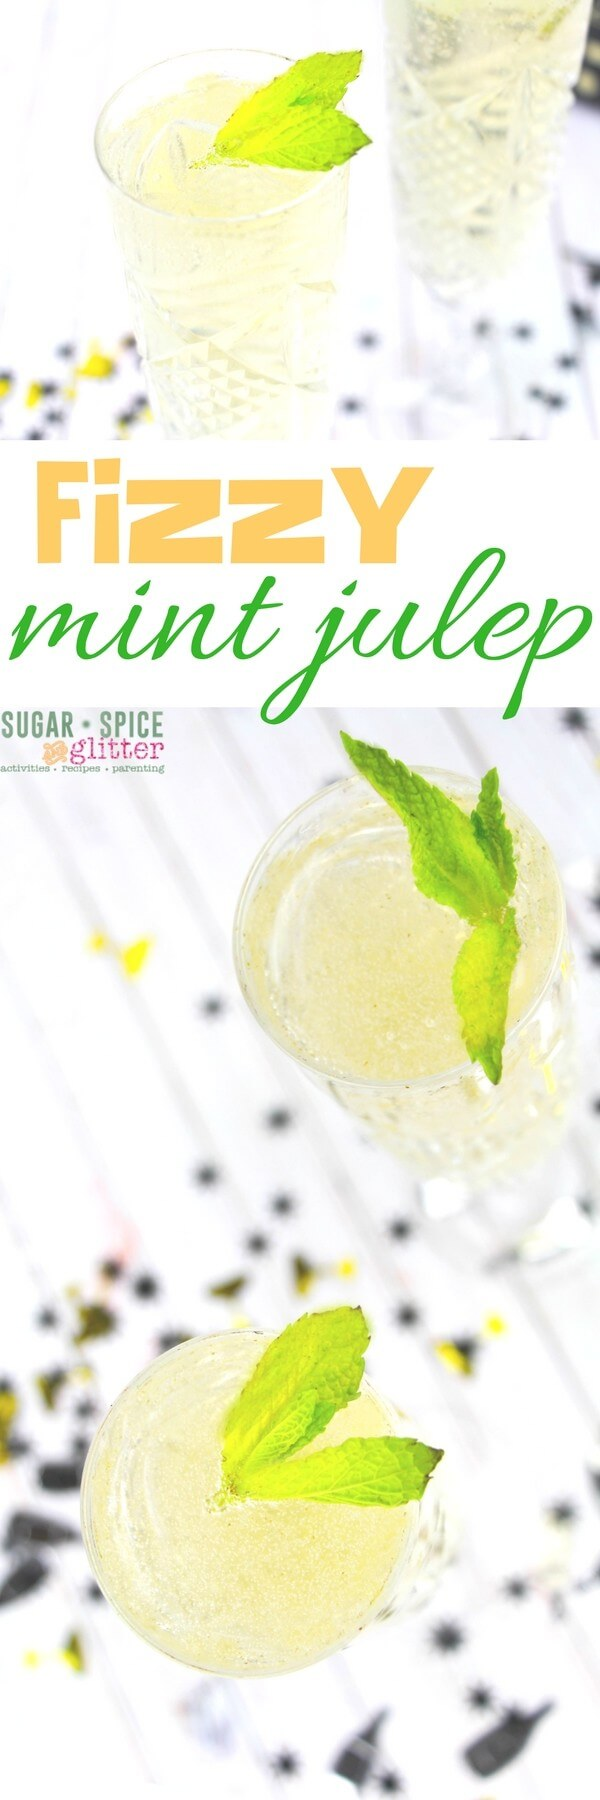 This Fizzy Mint Julep cocktail is a fun, celebratory drink that is smoother than a traditional mint julep but still has all of the flavor. If you're looking for a twist on a champagne cocktail, give this a try.